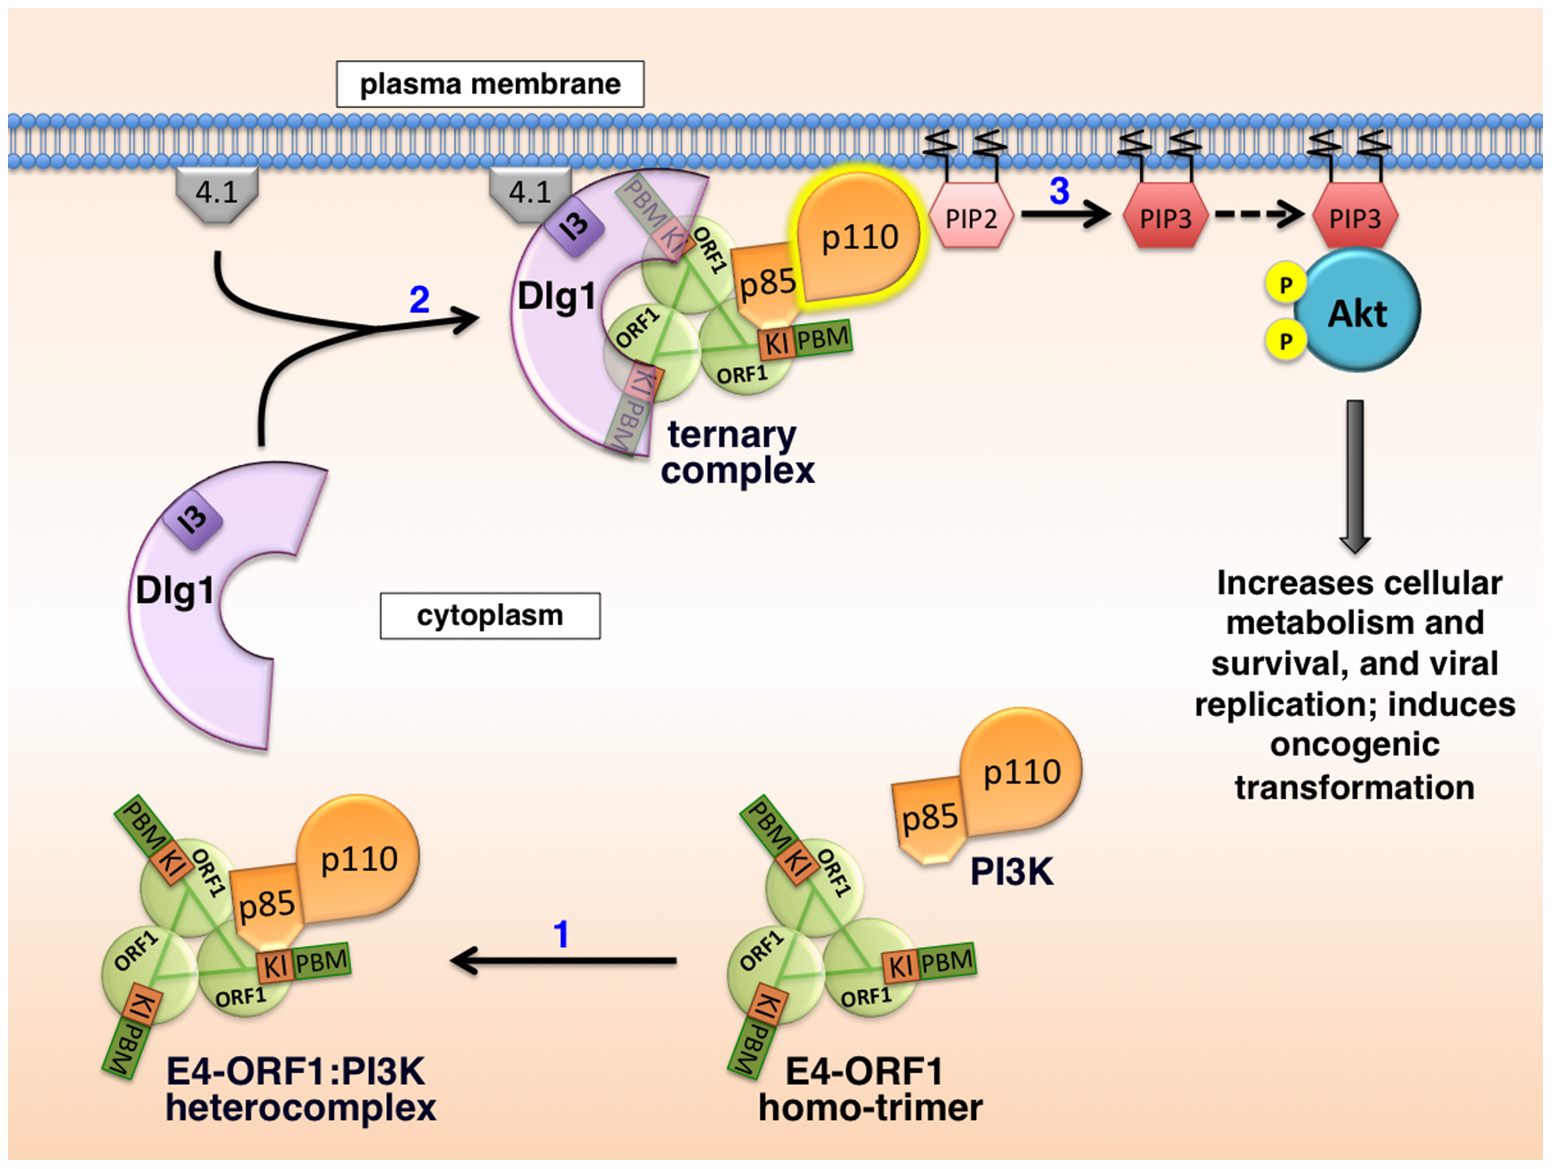 Proposed molecular mechanism for PI3K activation by the adenovirus E4-ORF1 protein.